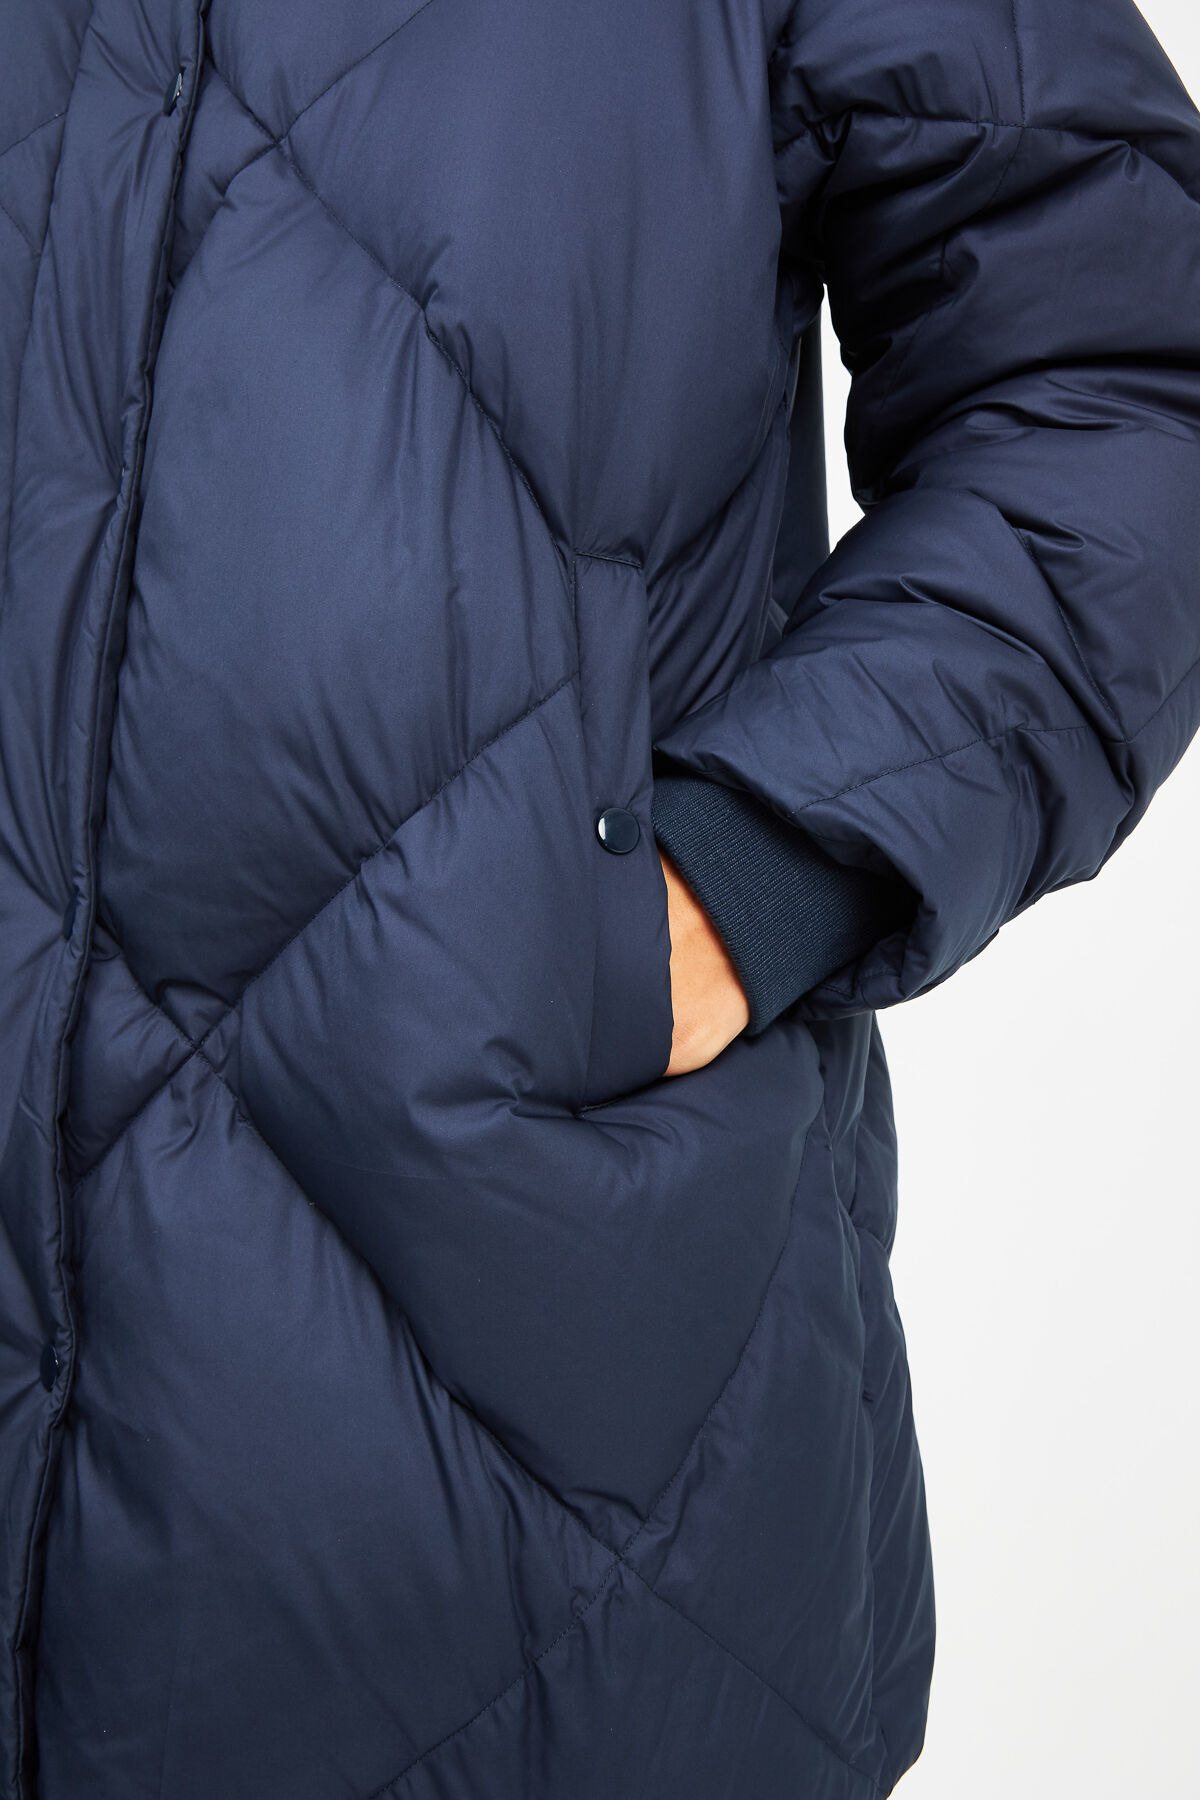 IKEDA PARKA JDF Down Diamond-Quilted - Oversized Fit